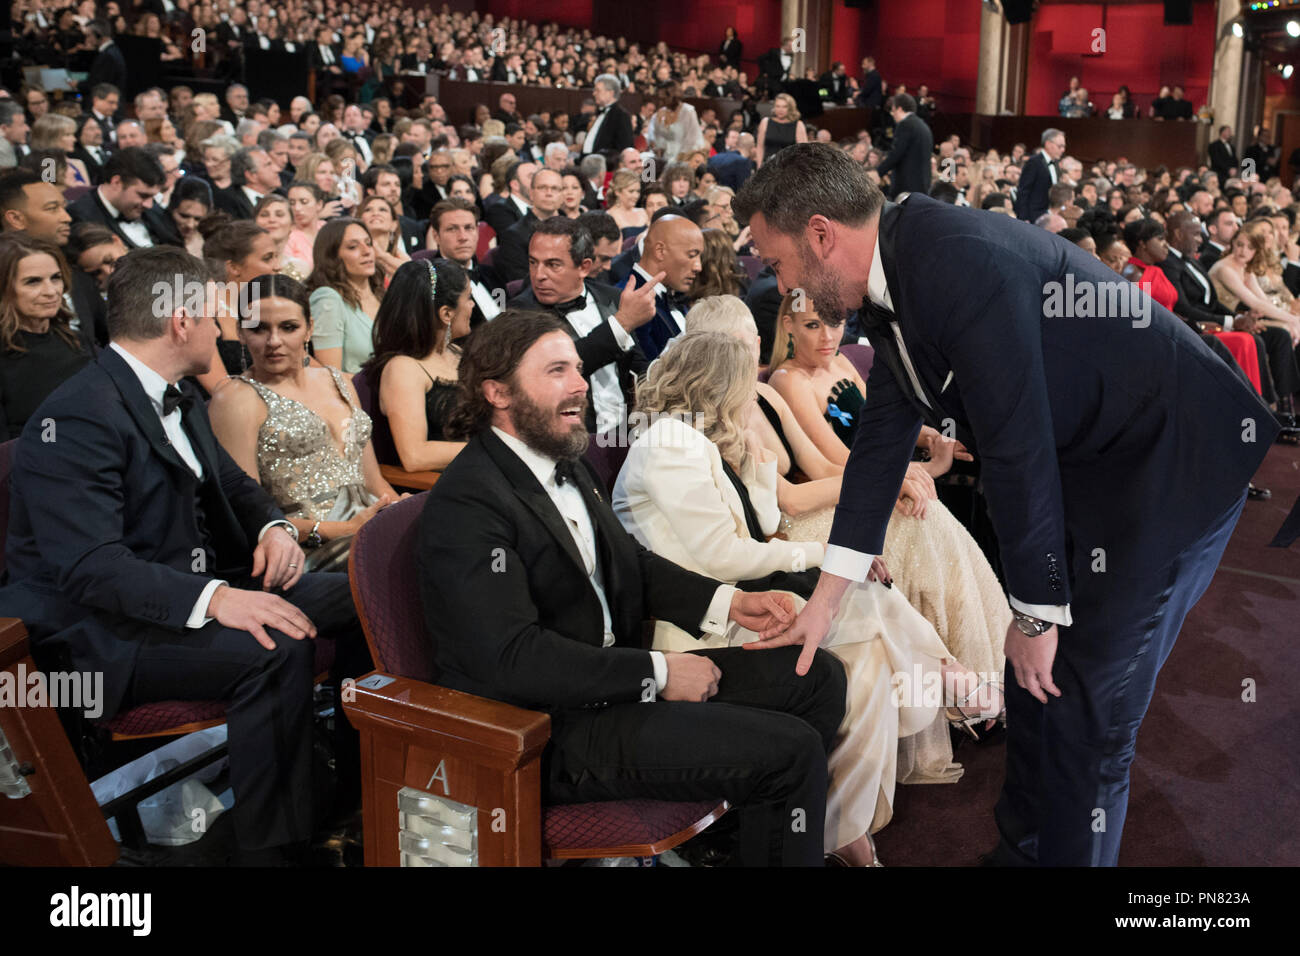 Jimmy Kimmel talks to Oscar® nominee Casey Affleck during the live ABC Telecast of The 89th Oscars® at the Dolby® Theatre in Hollywood, CA on Sunday, February 26, 2017.  File Reference # 33242_571THA  For Editorial Use Only -  All Rights Reserved - Stock Image